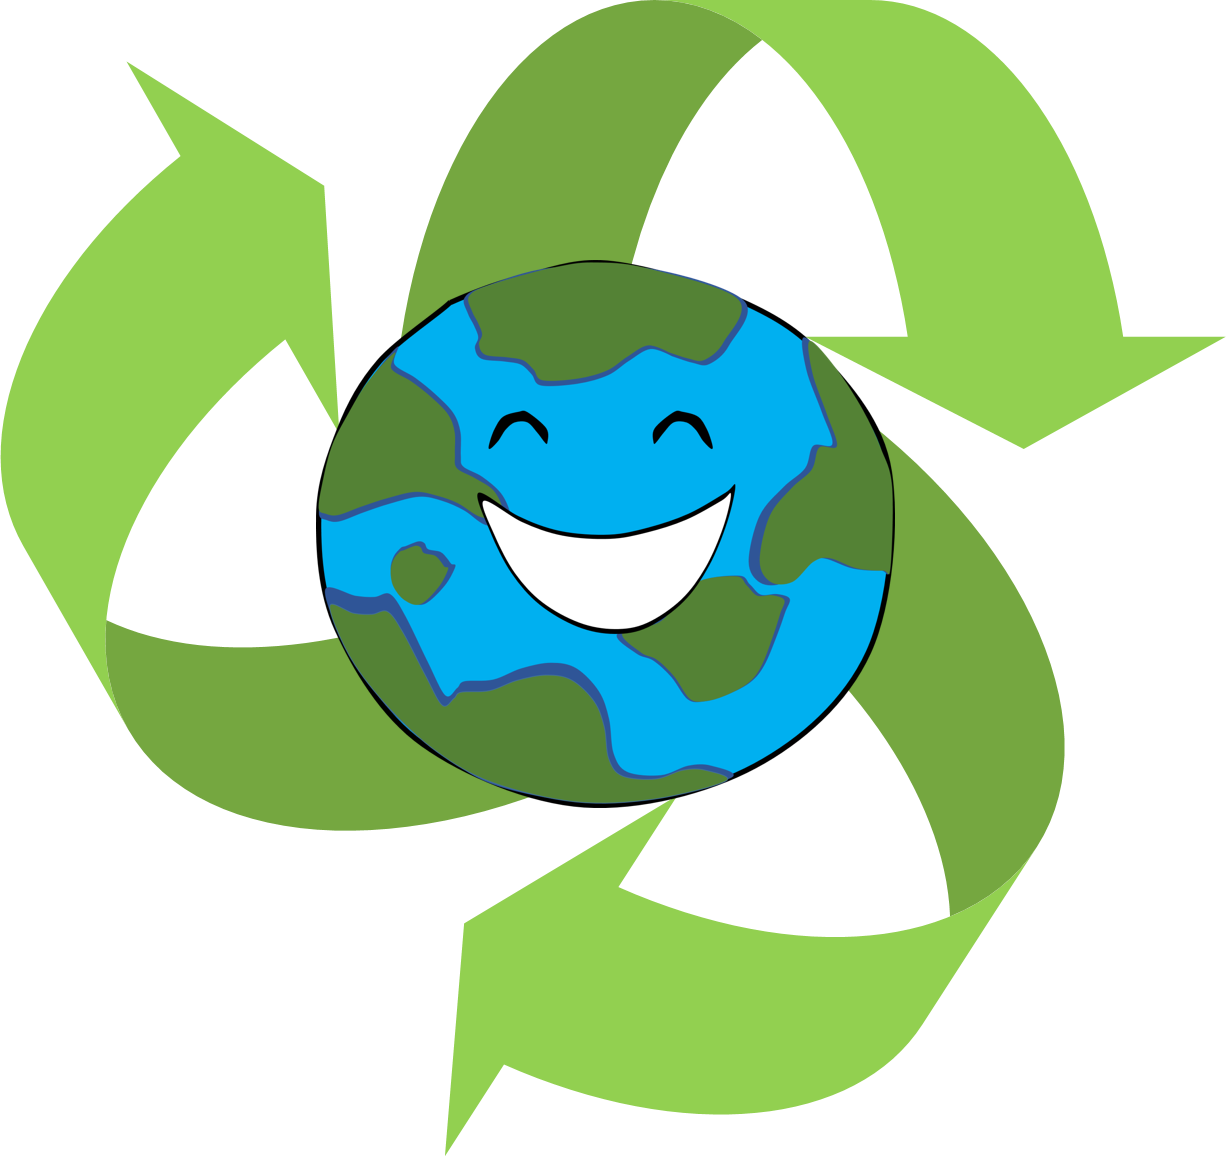 Reduce reuse recycle clipart club.